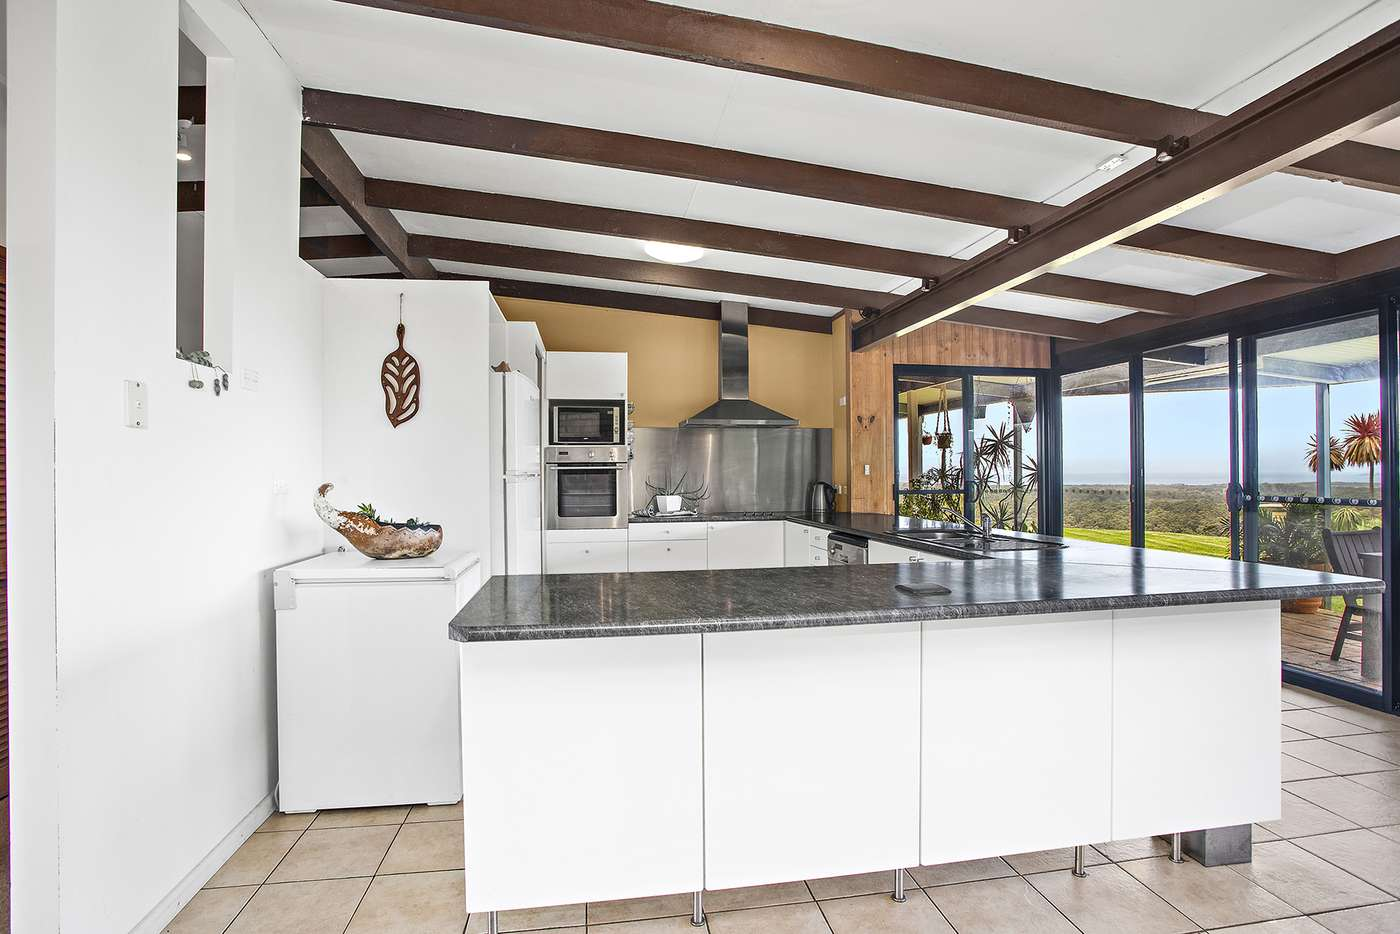 Sixth view of Homely house listing, 35D Rickards Rd, Sandy Beach NSW 2456